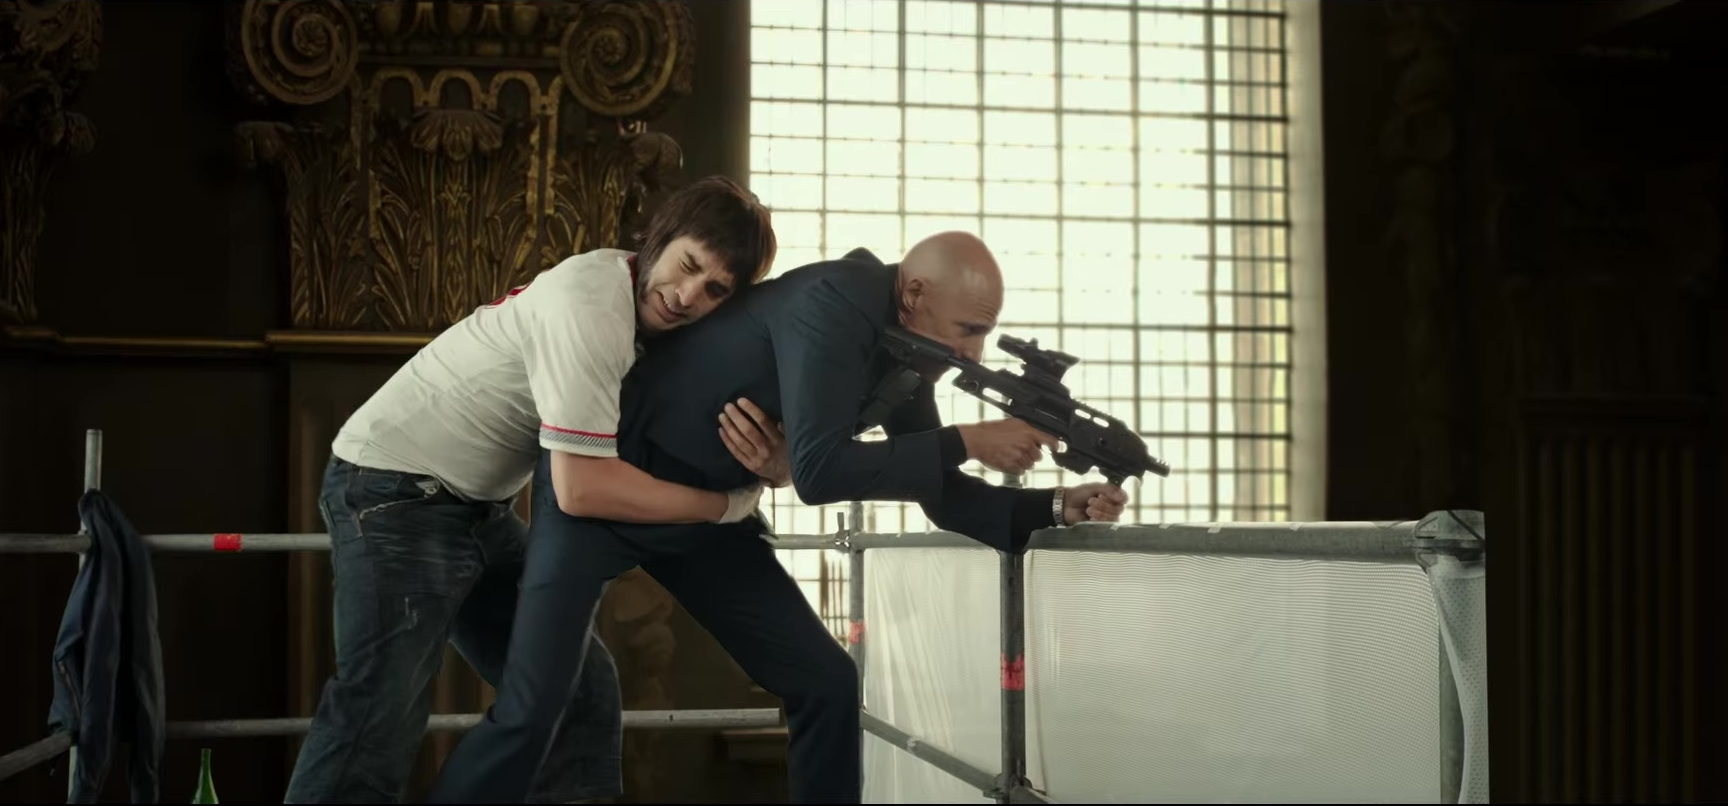 We've got our hands on a brand new trailer of The Brothers Grimsby ...